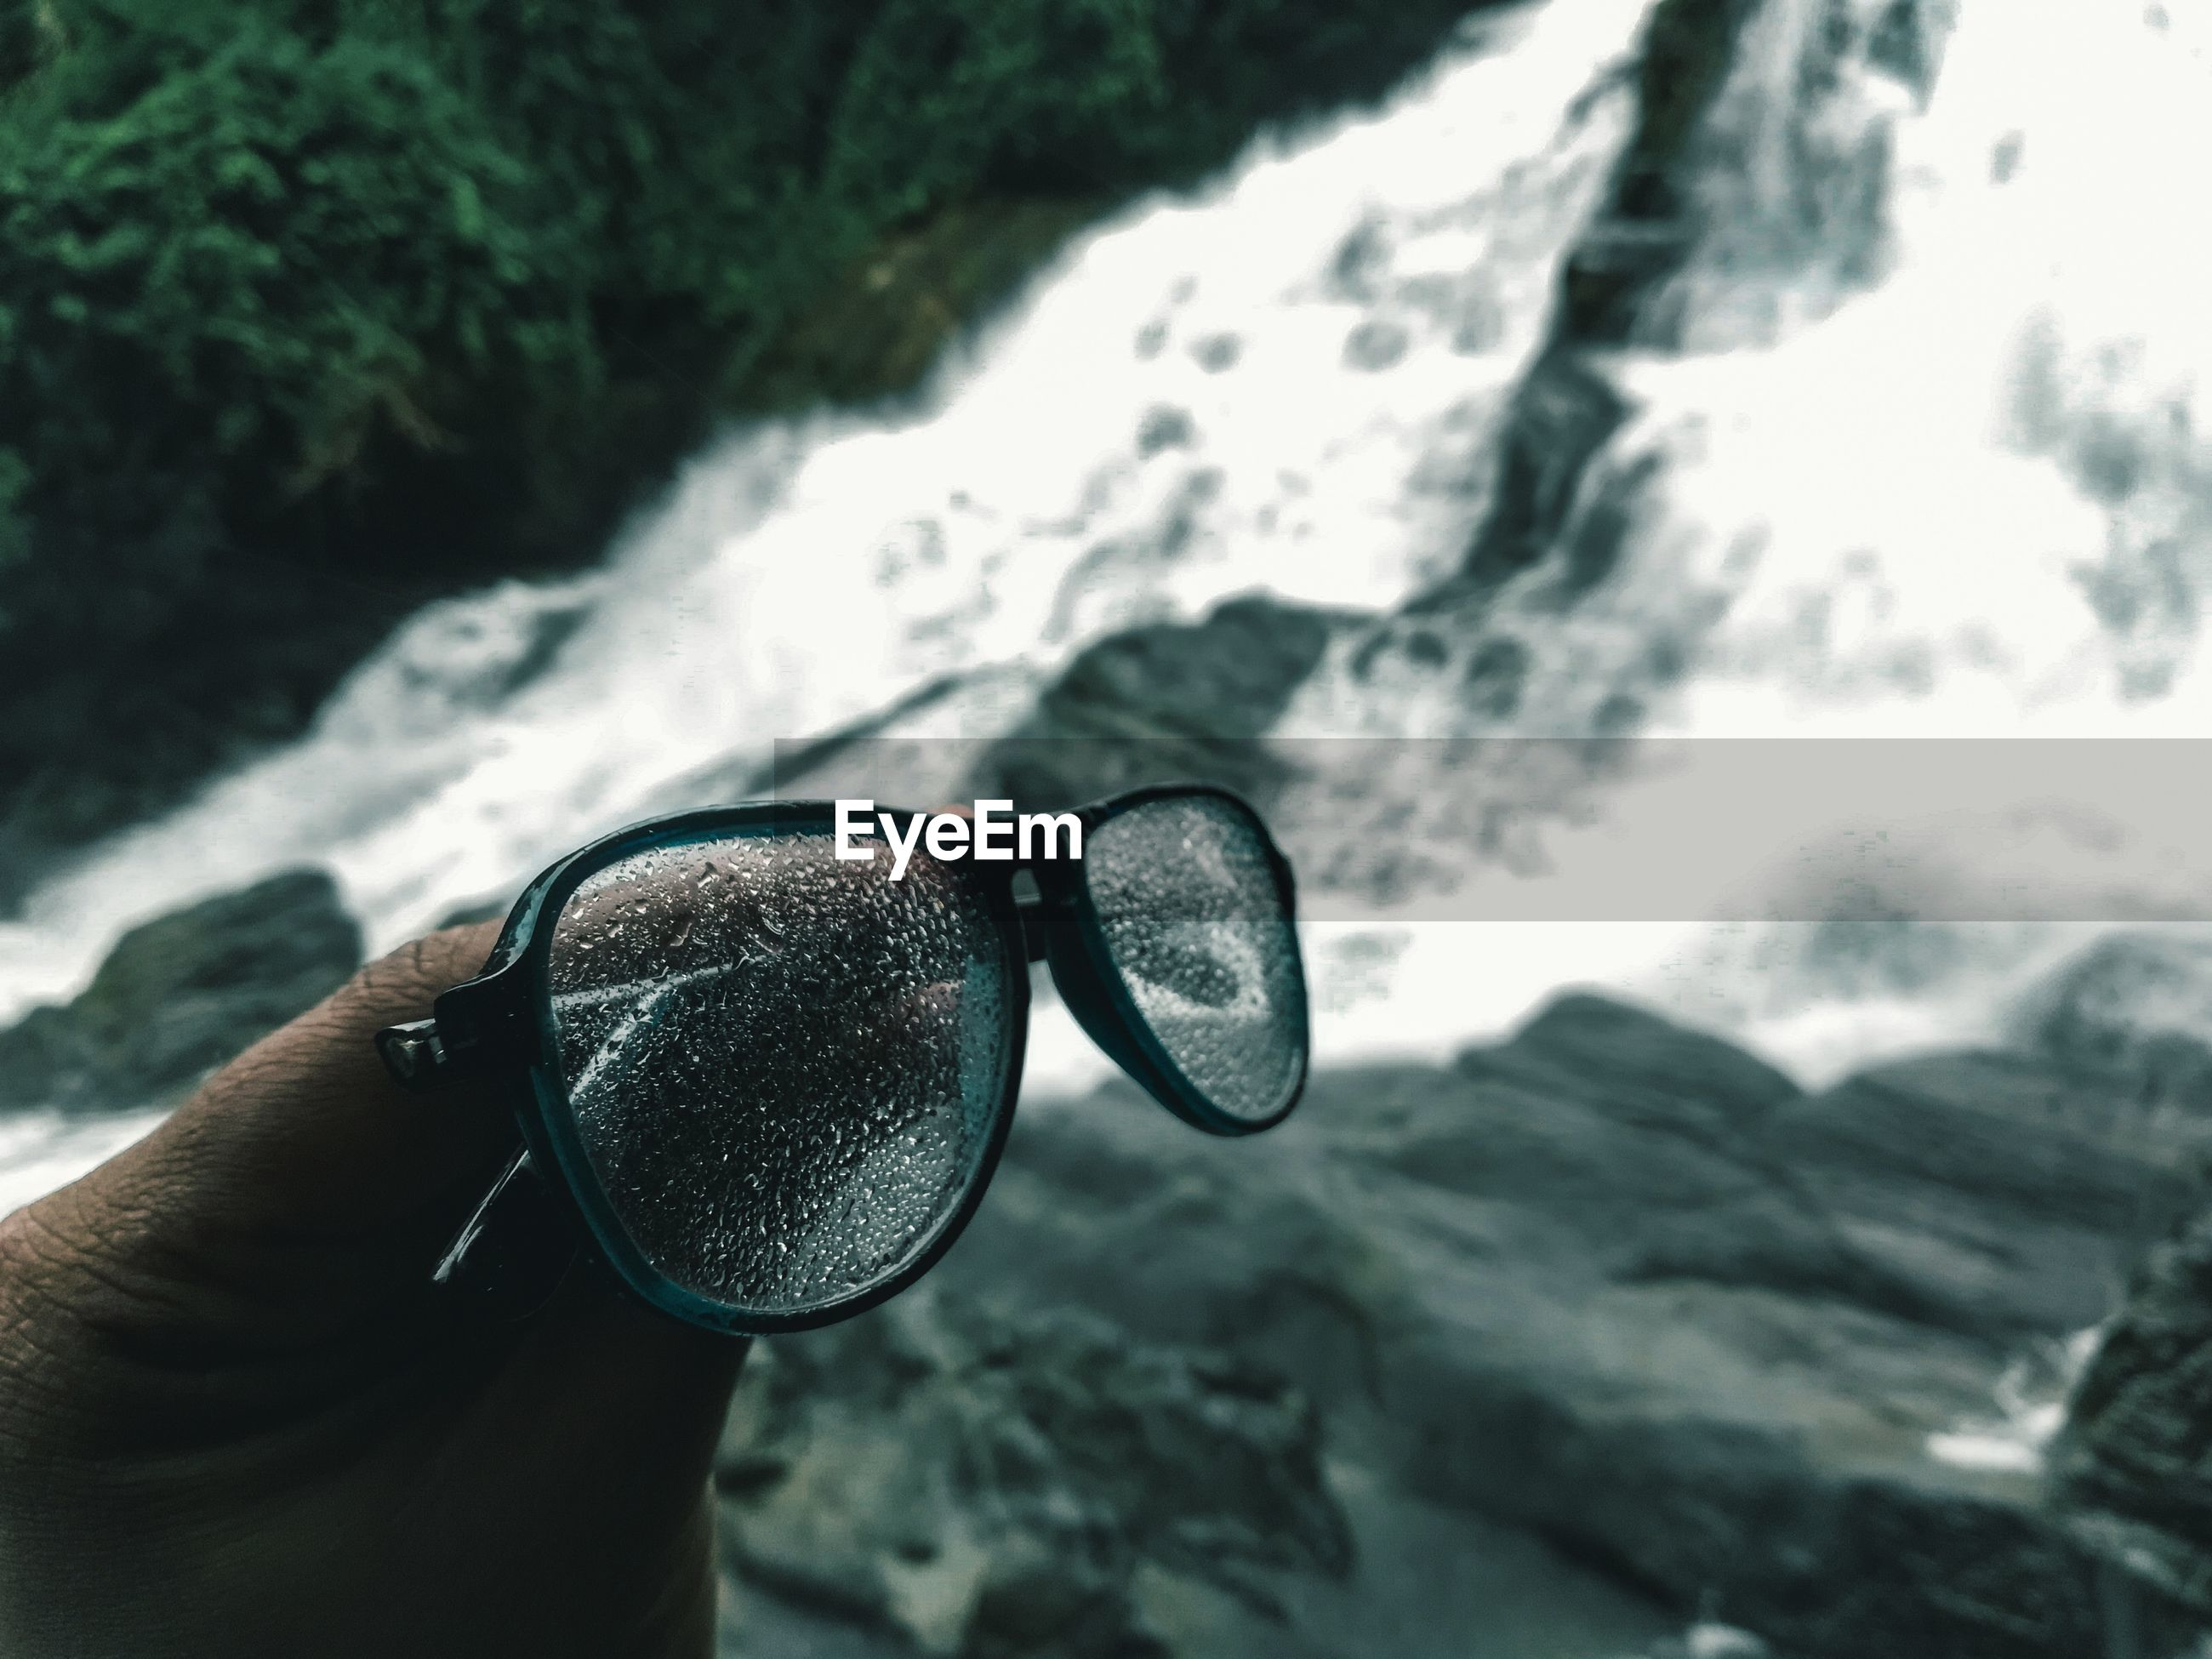 Cropped hand holding eyeglasses against waterfall